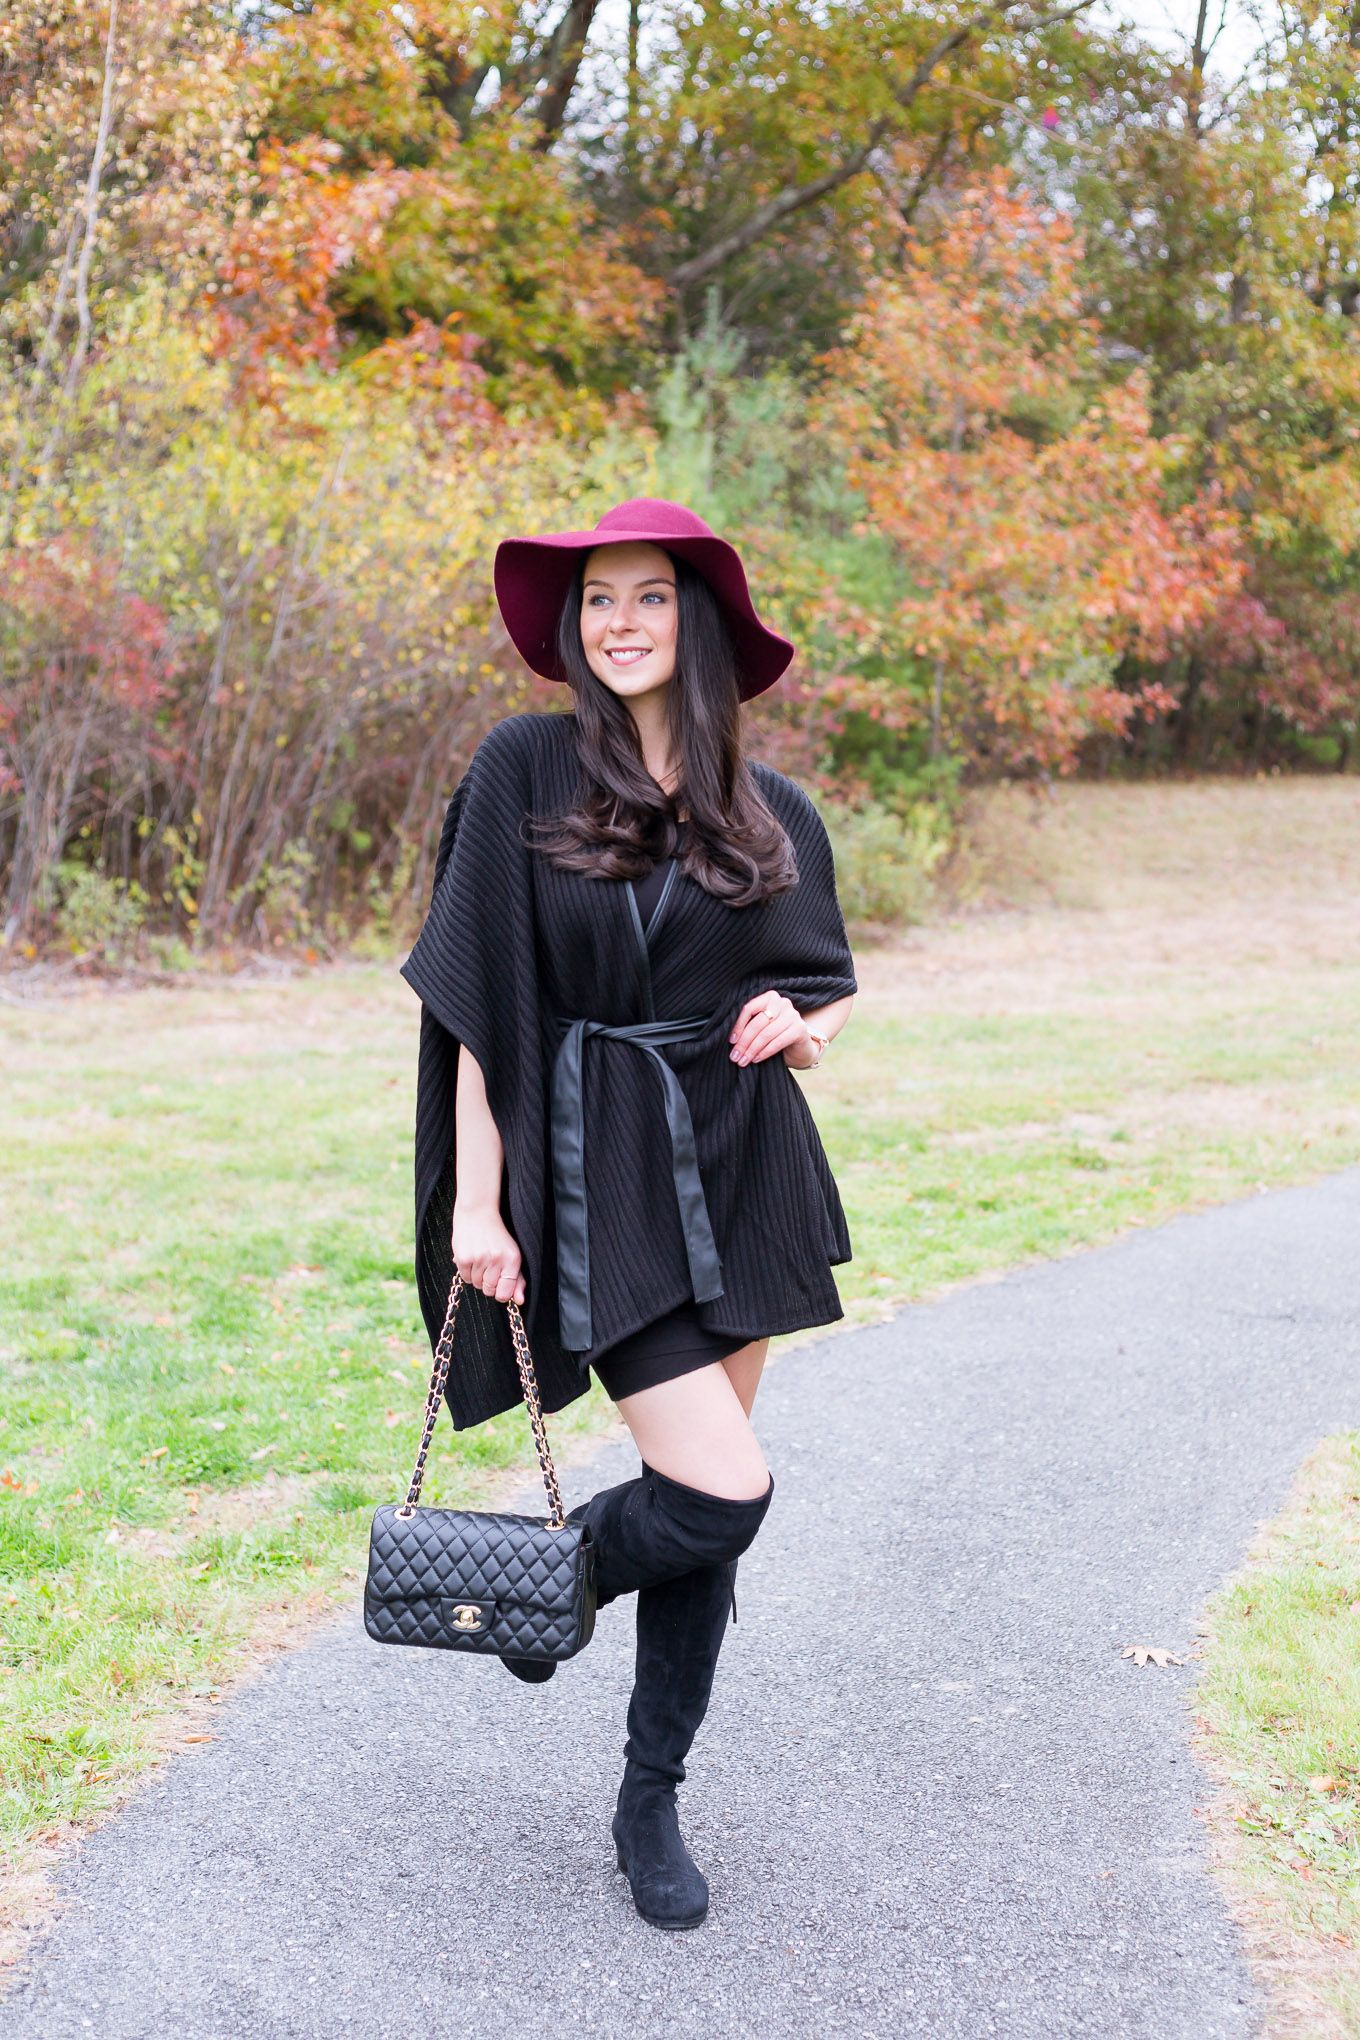 ad056371c46 Wear a belted poncho sweater in style! I paired this black sweater with a  slim